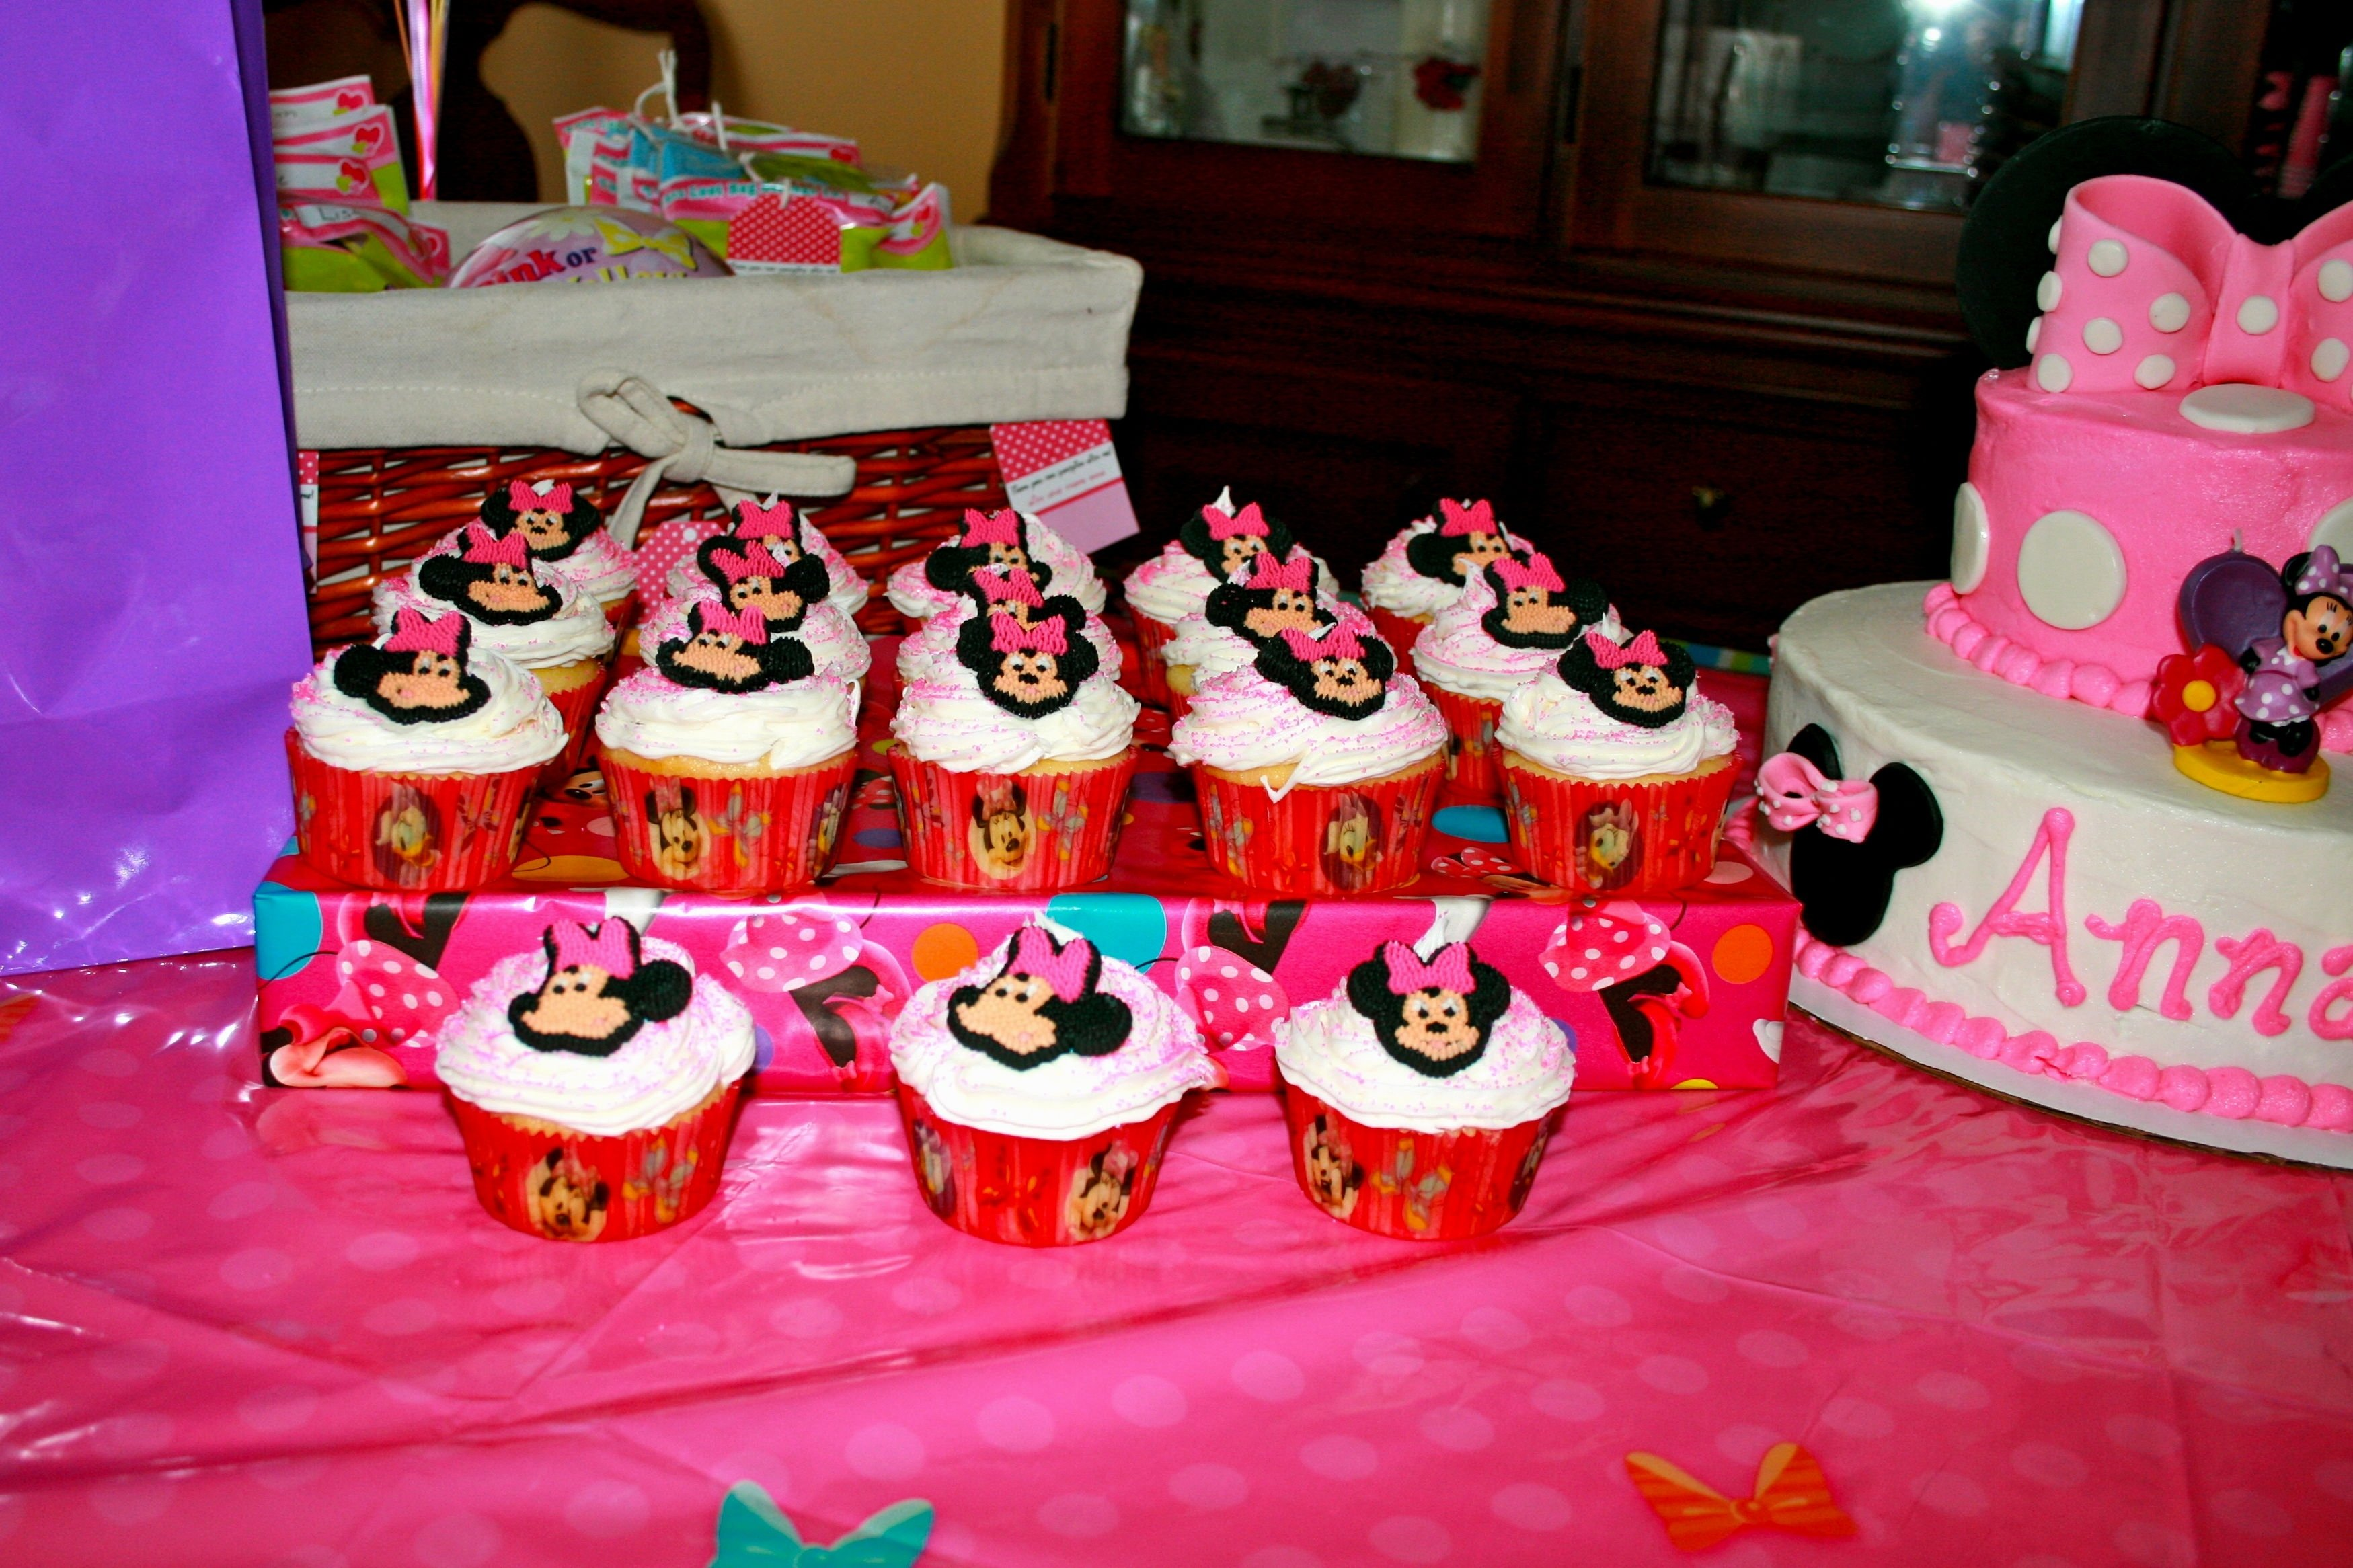 10 Stunning Minnie And Mickey Party Ideas decorations for minnie and mickey mouse party decorating of party 2020